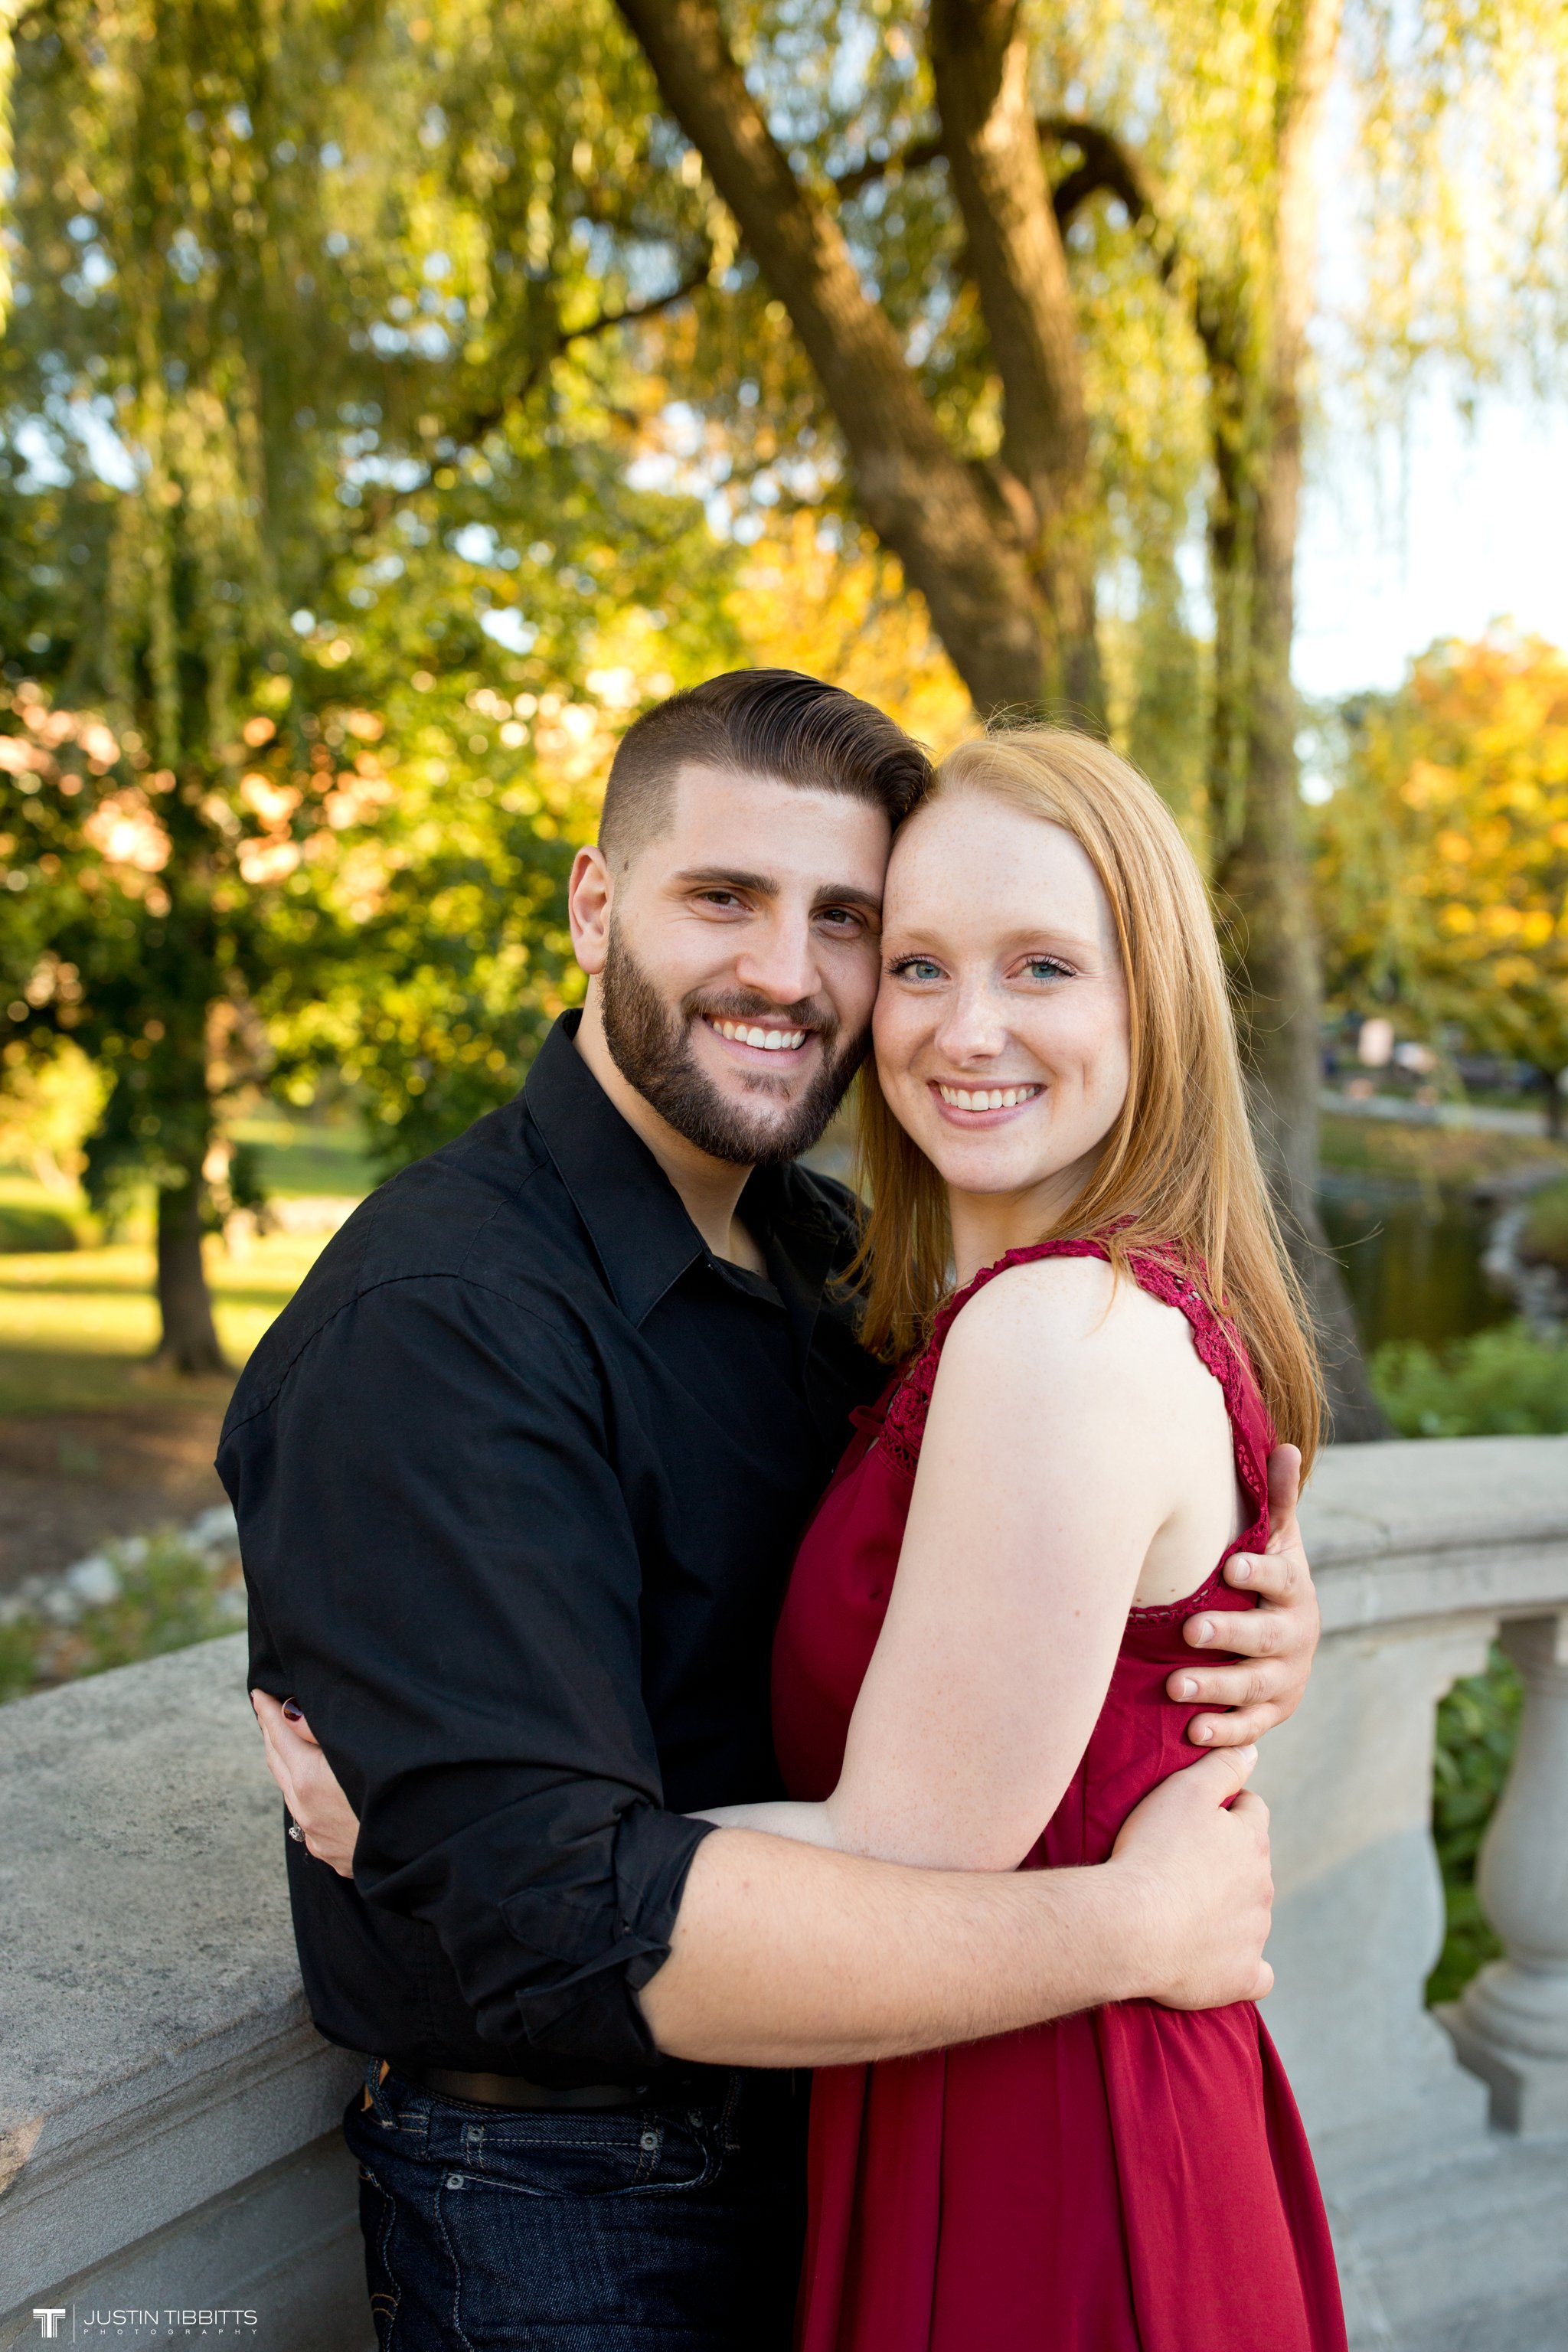 congress-park-saratoga-springs-engagement-photos-with-lauren-and-nick_0026